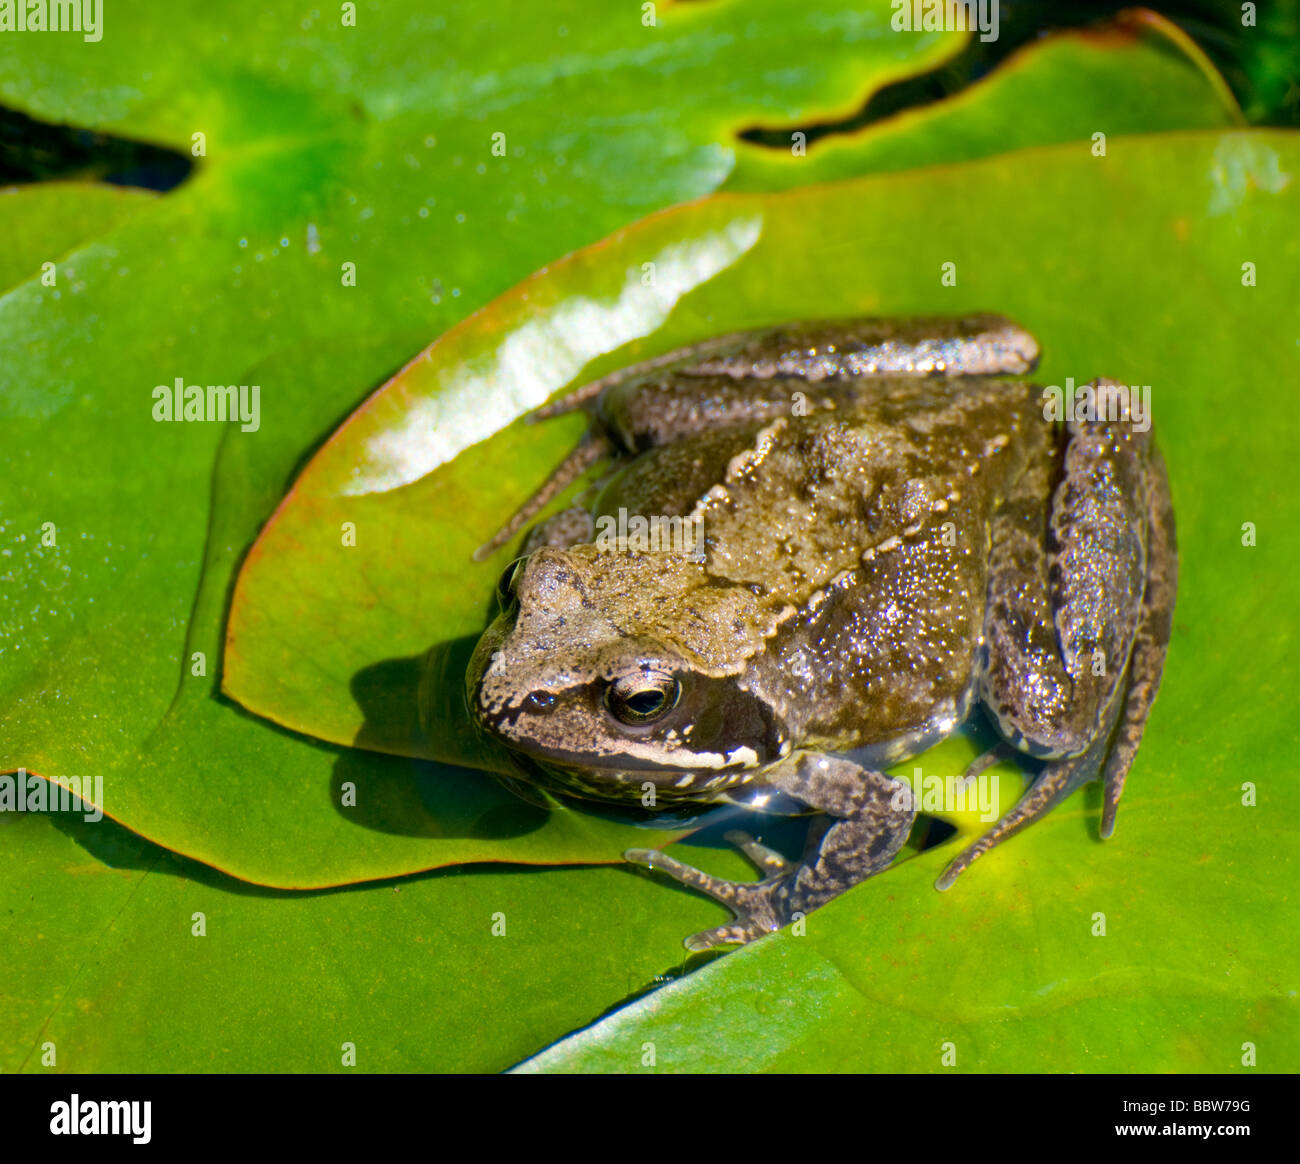 Common Frog (Rana temporaria) on Lily Pad in Garden Pond. Kent, UK - Stock Image